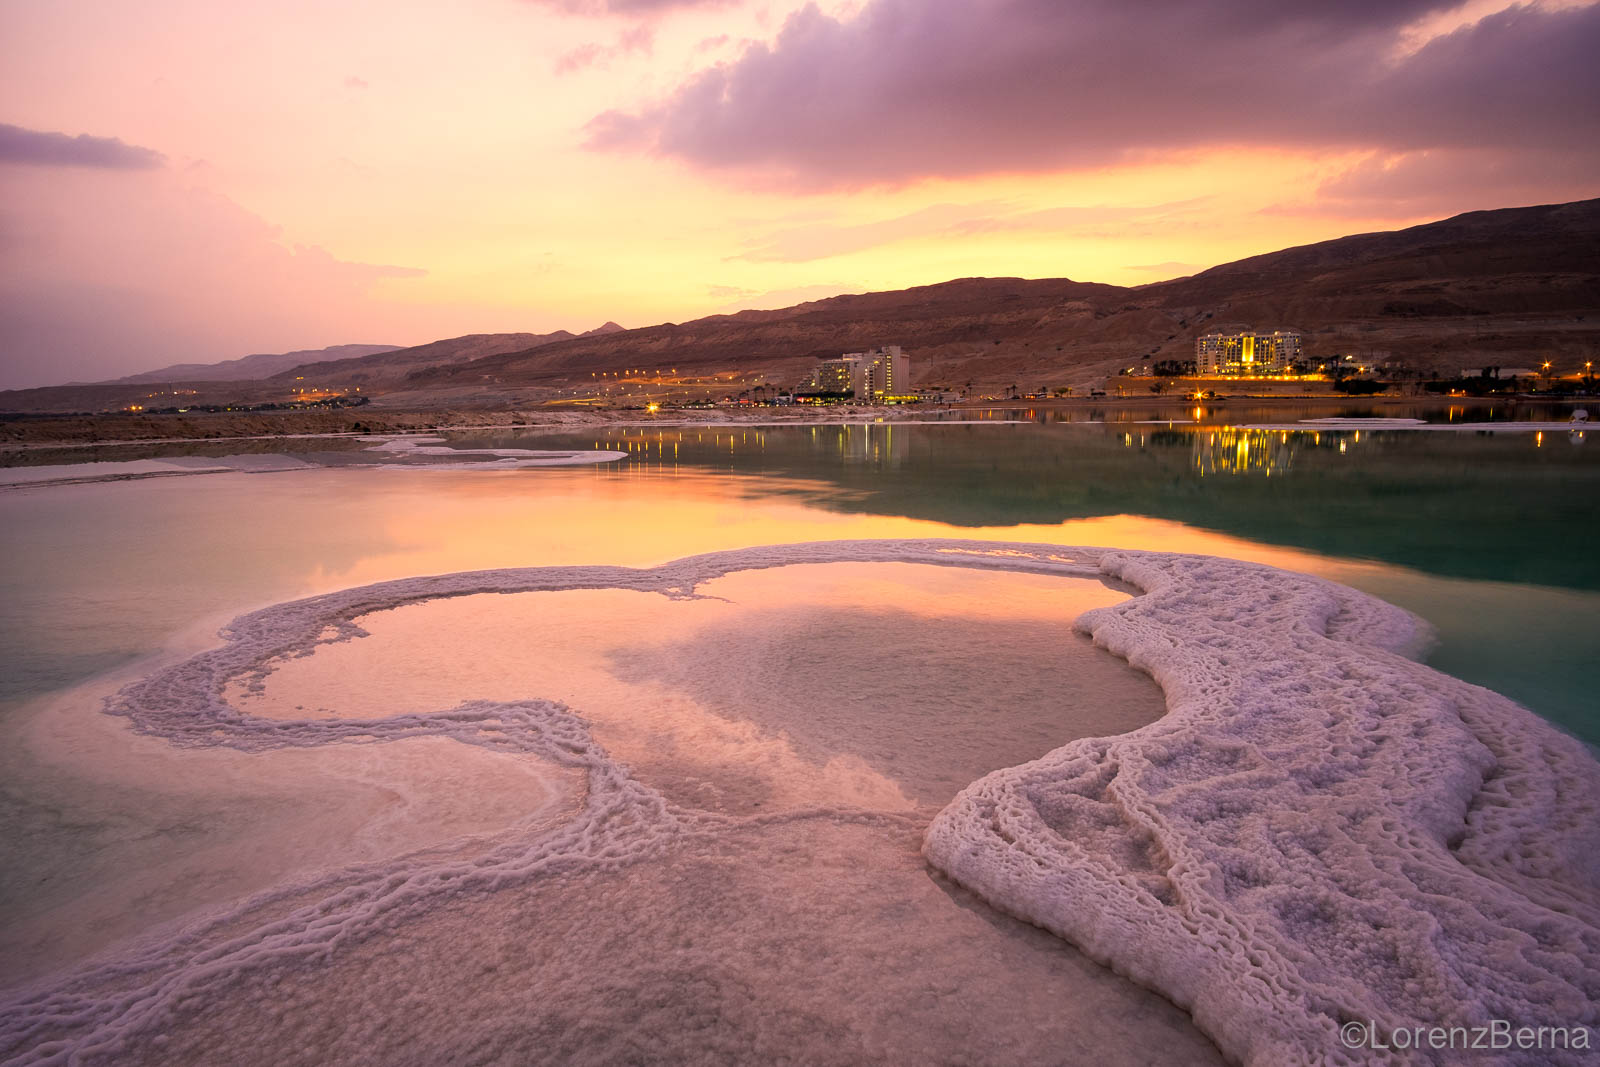 Sunset on the dead sea at Ein Bokek, Israel